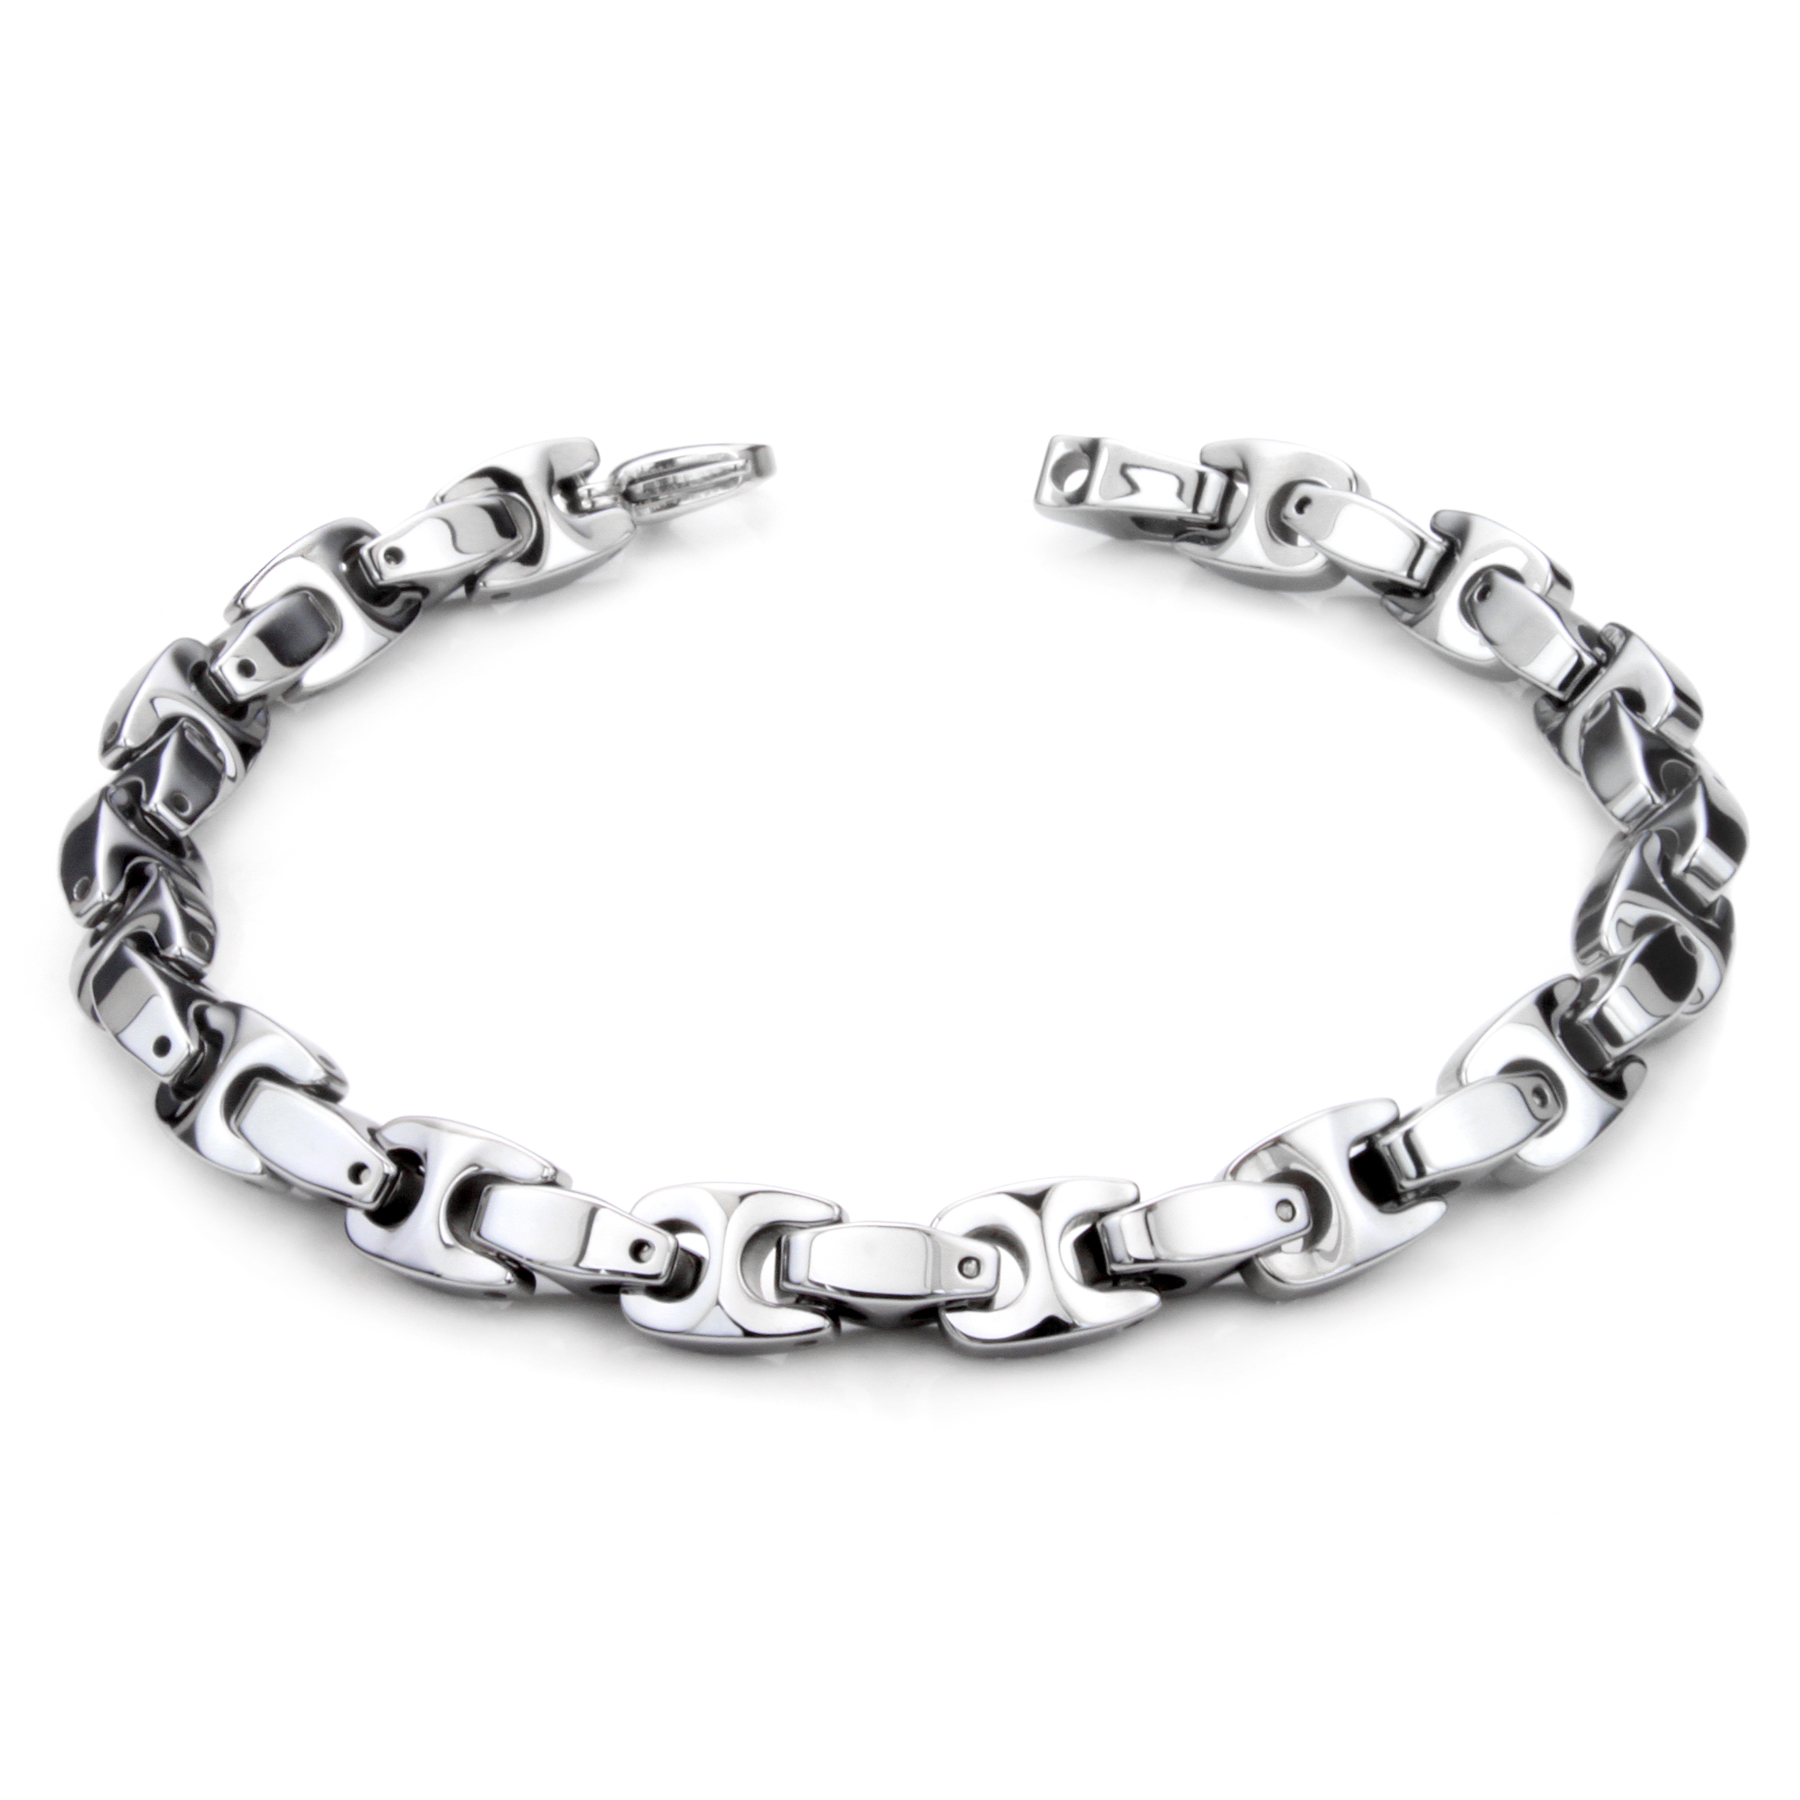 product tungsten price white zorawar bracelet in at online buy low india